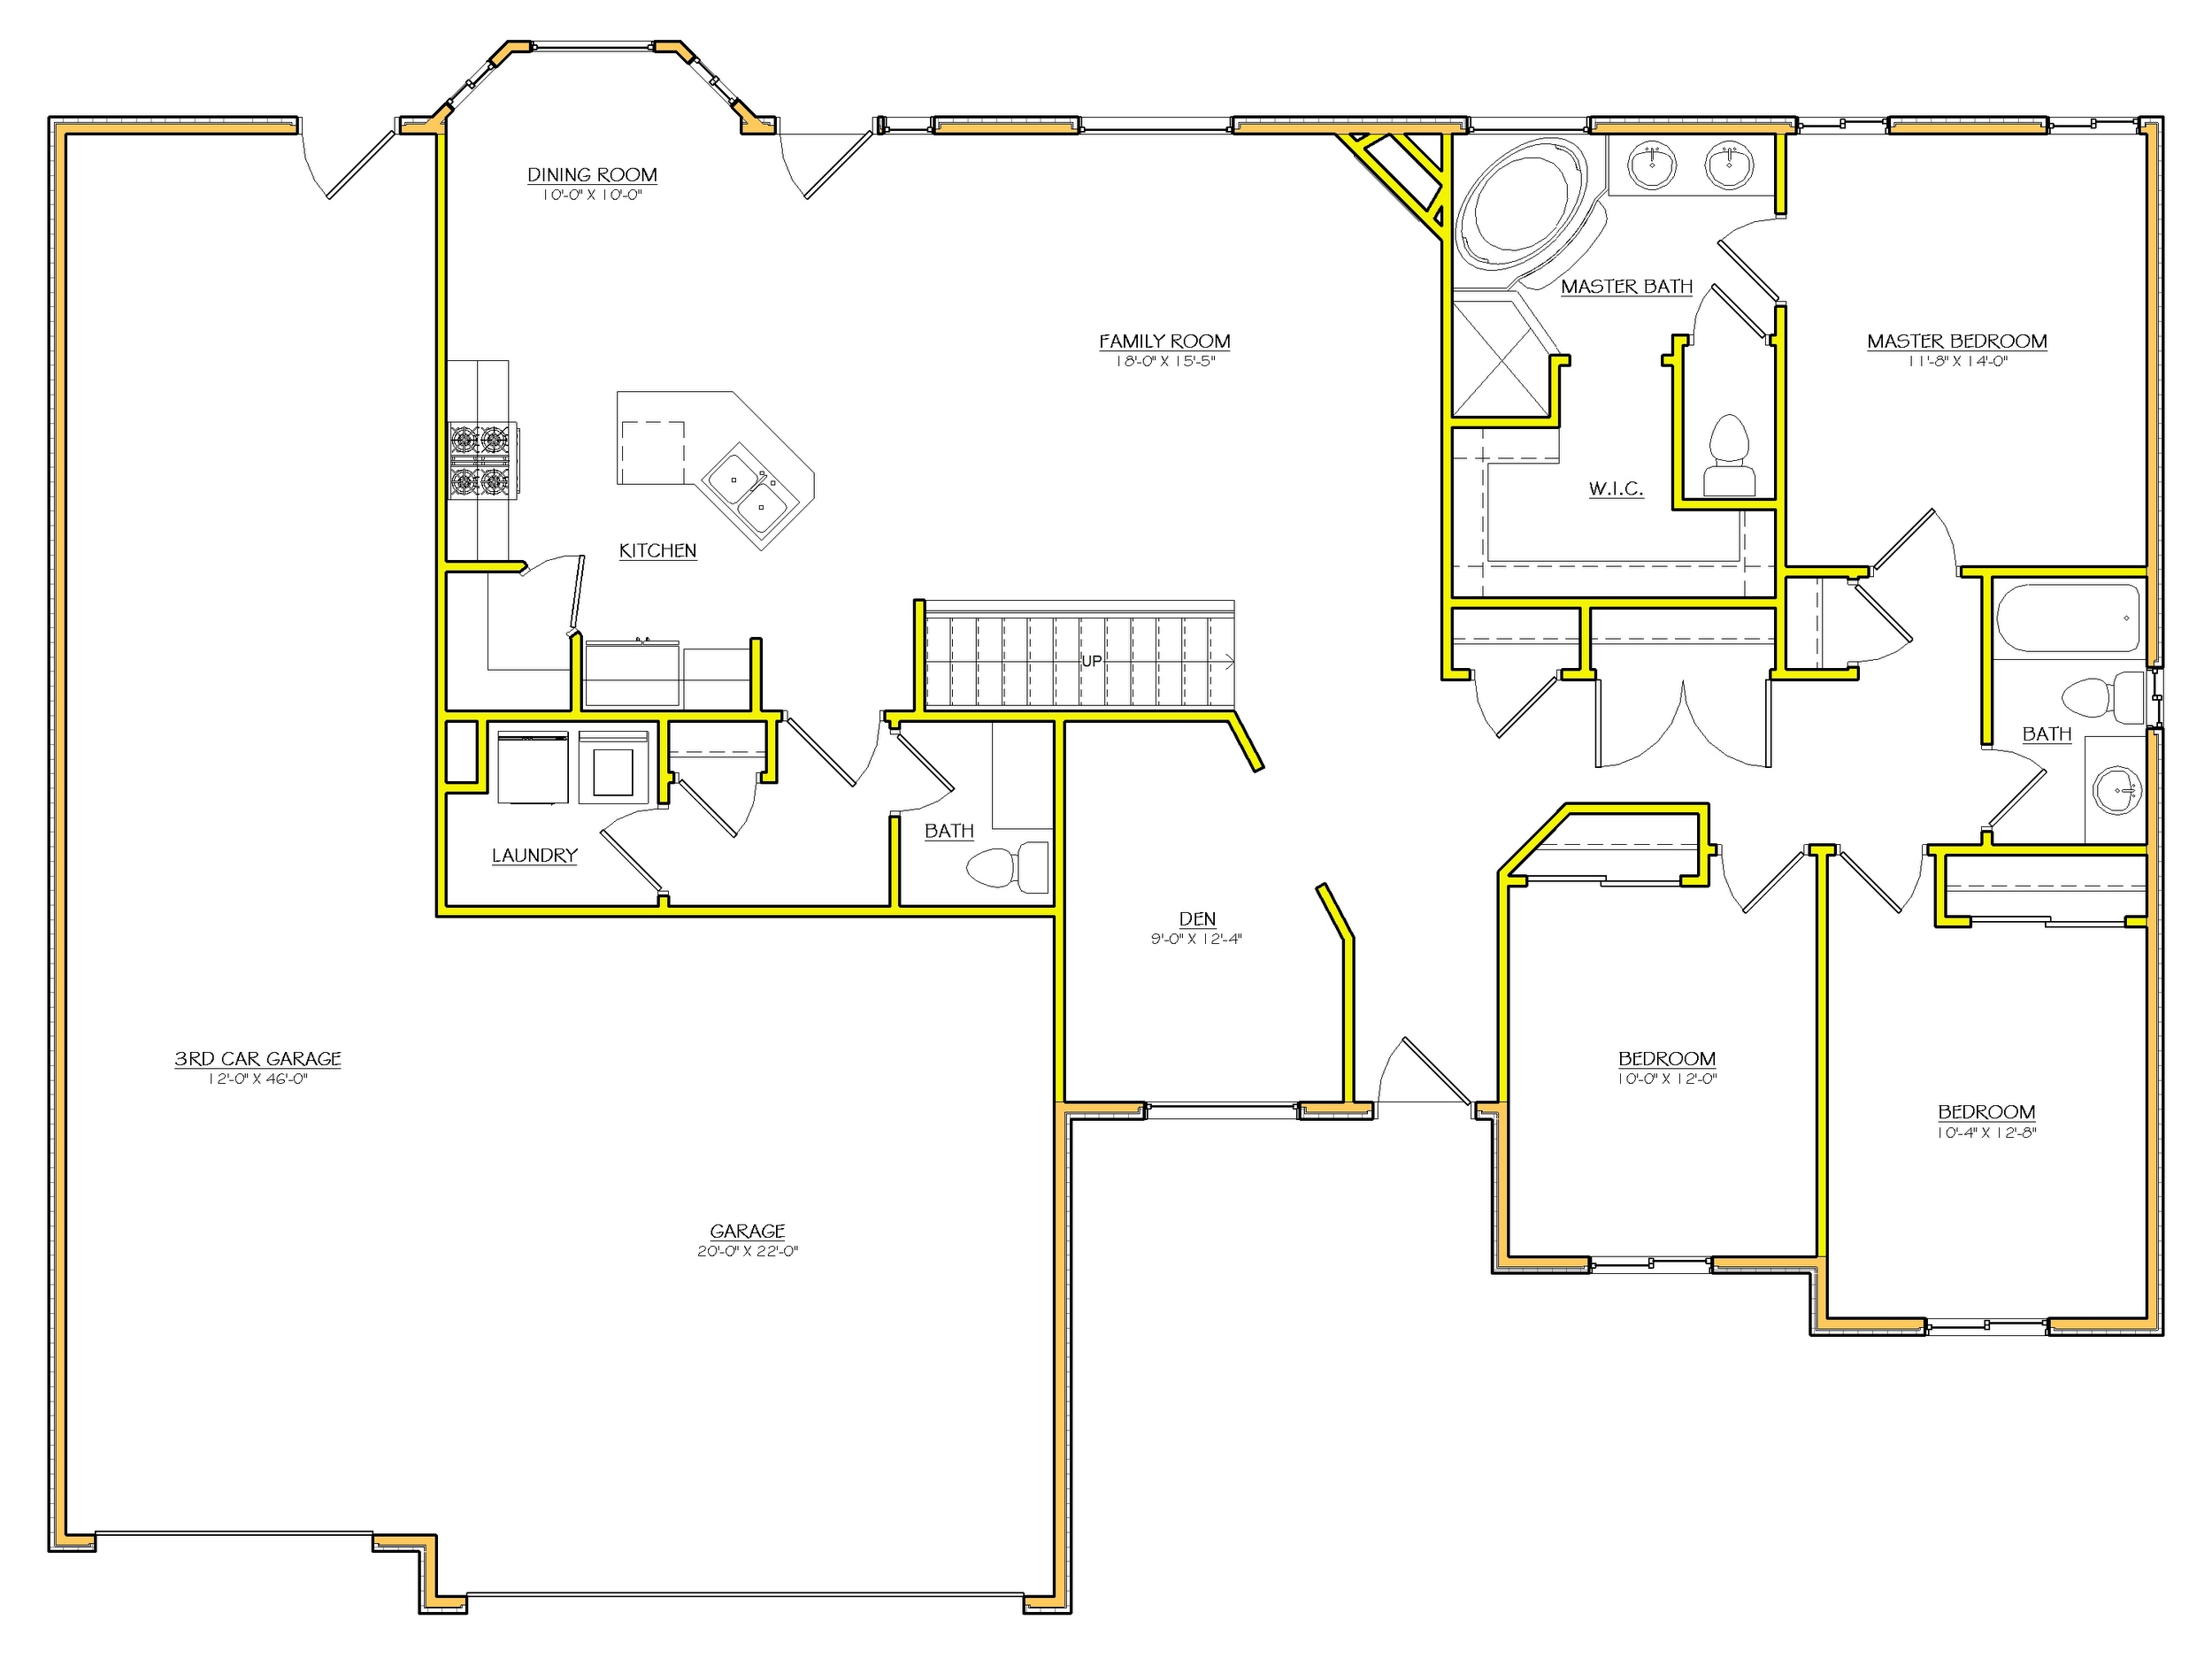 House plans in utah house plans in utah smart design 3 for Craftsman house plans utah